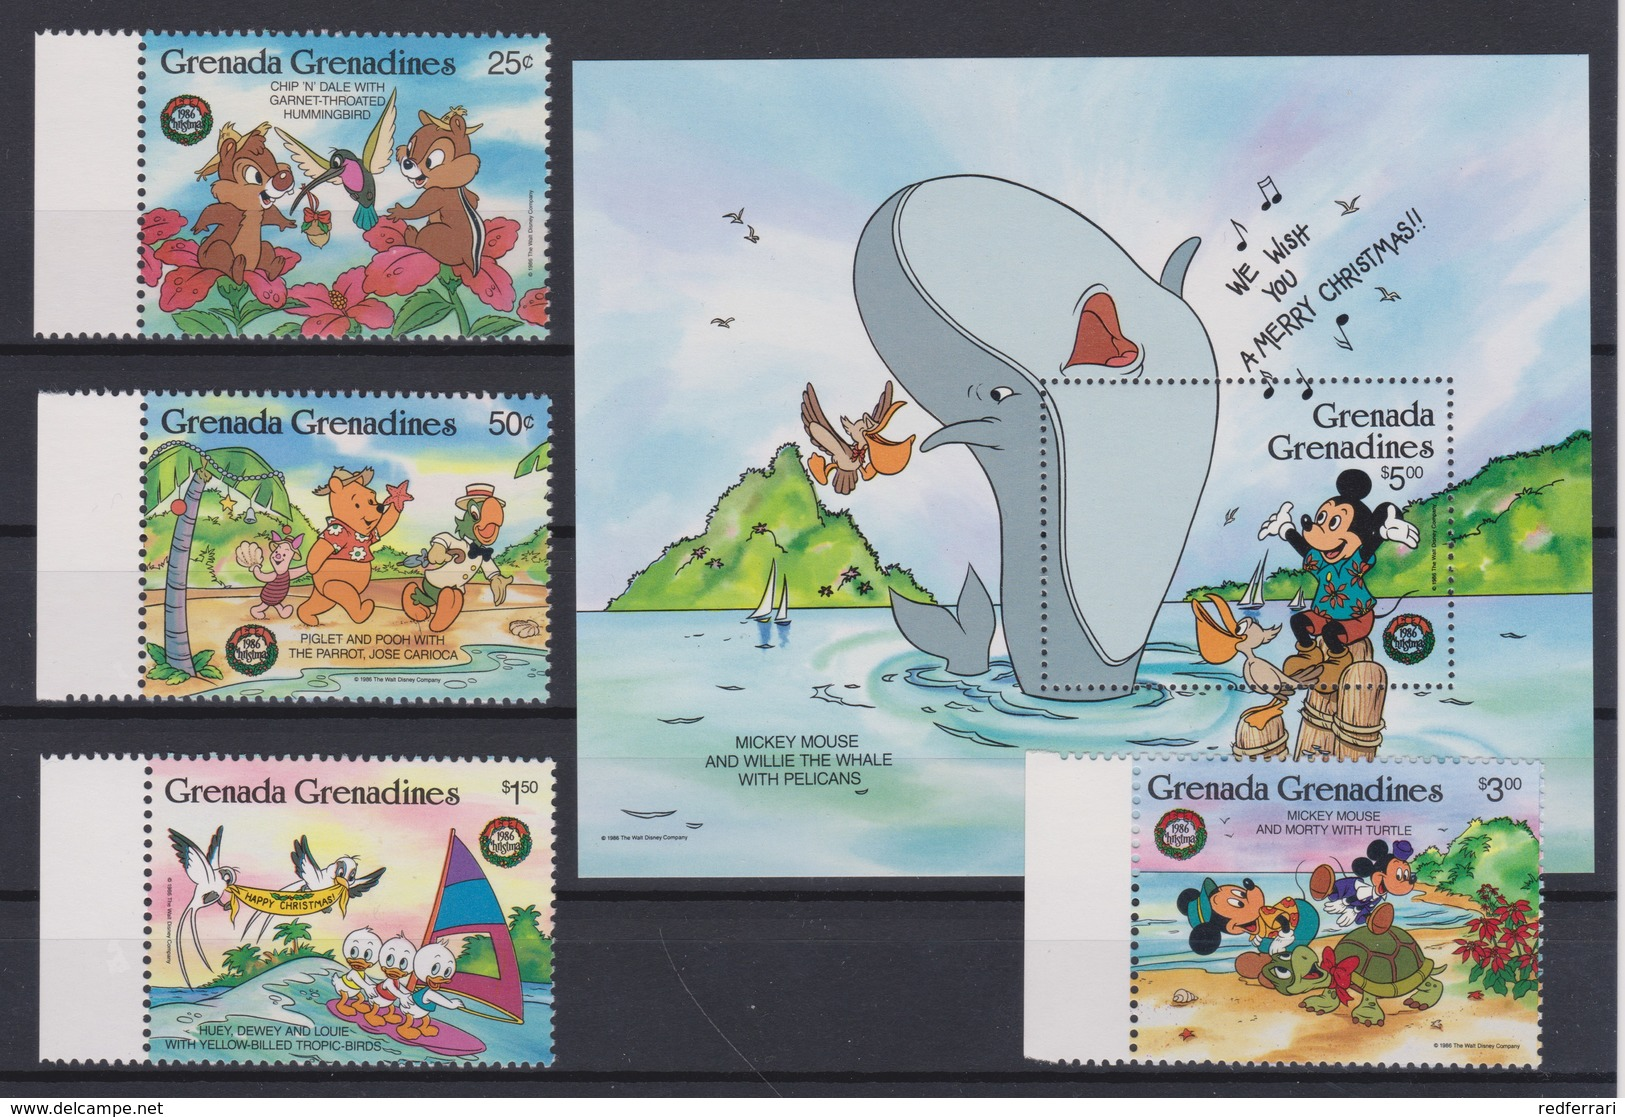 2278  WALT DISNEY - GRENADA  GRENADINES  ( Christmas 1986 )  Mickey Mouse And Willie The Whale With Pelicans. - Disney